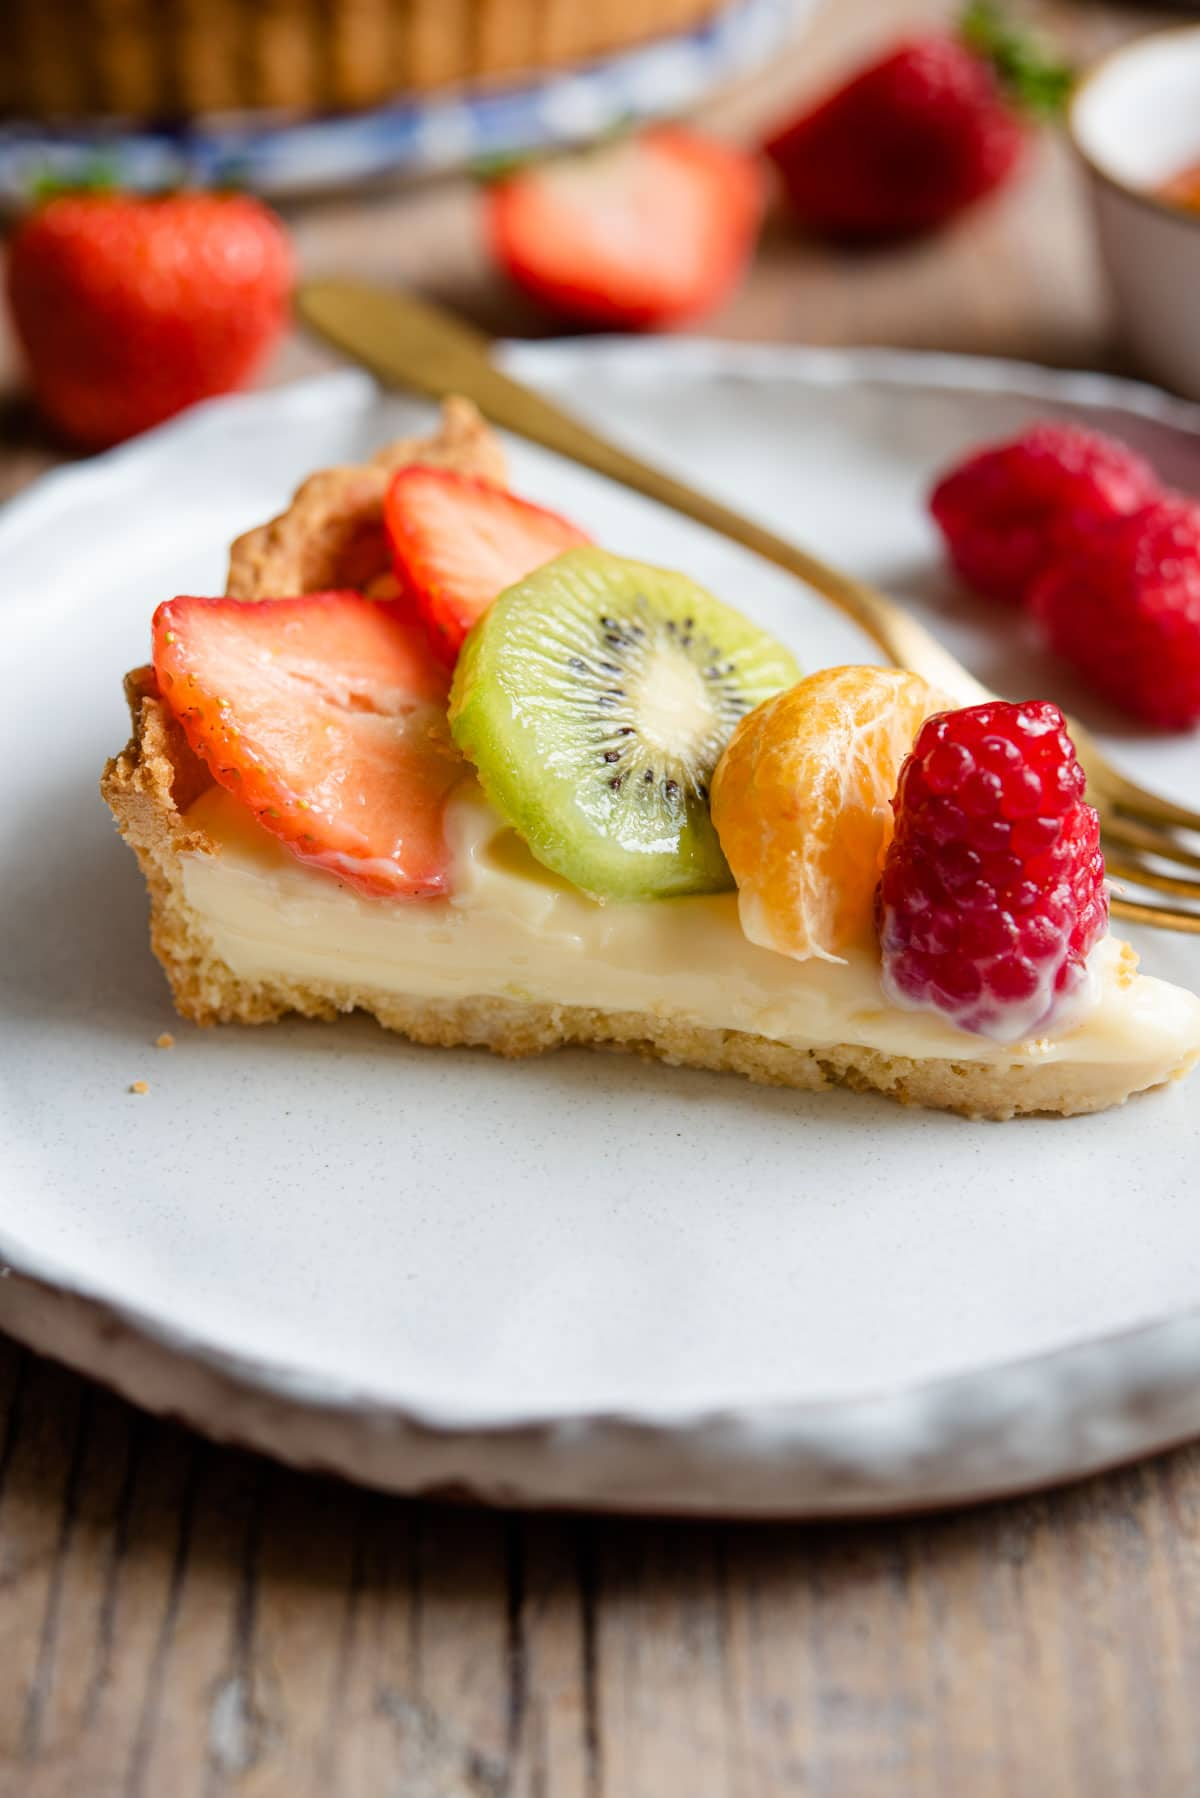 A slice of tart filled with pastry cream and fresh fruit